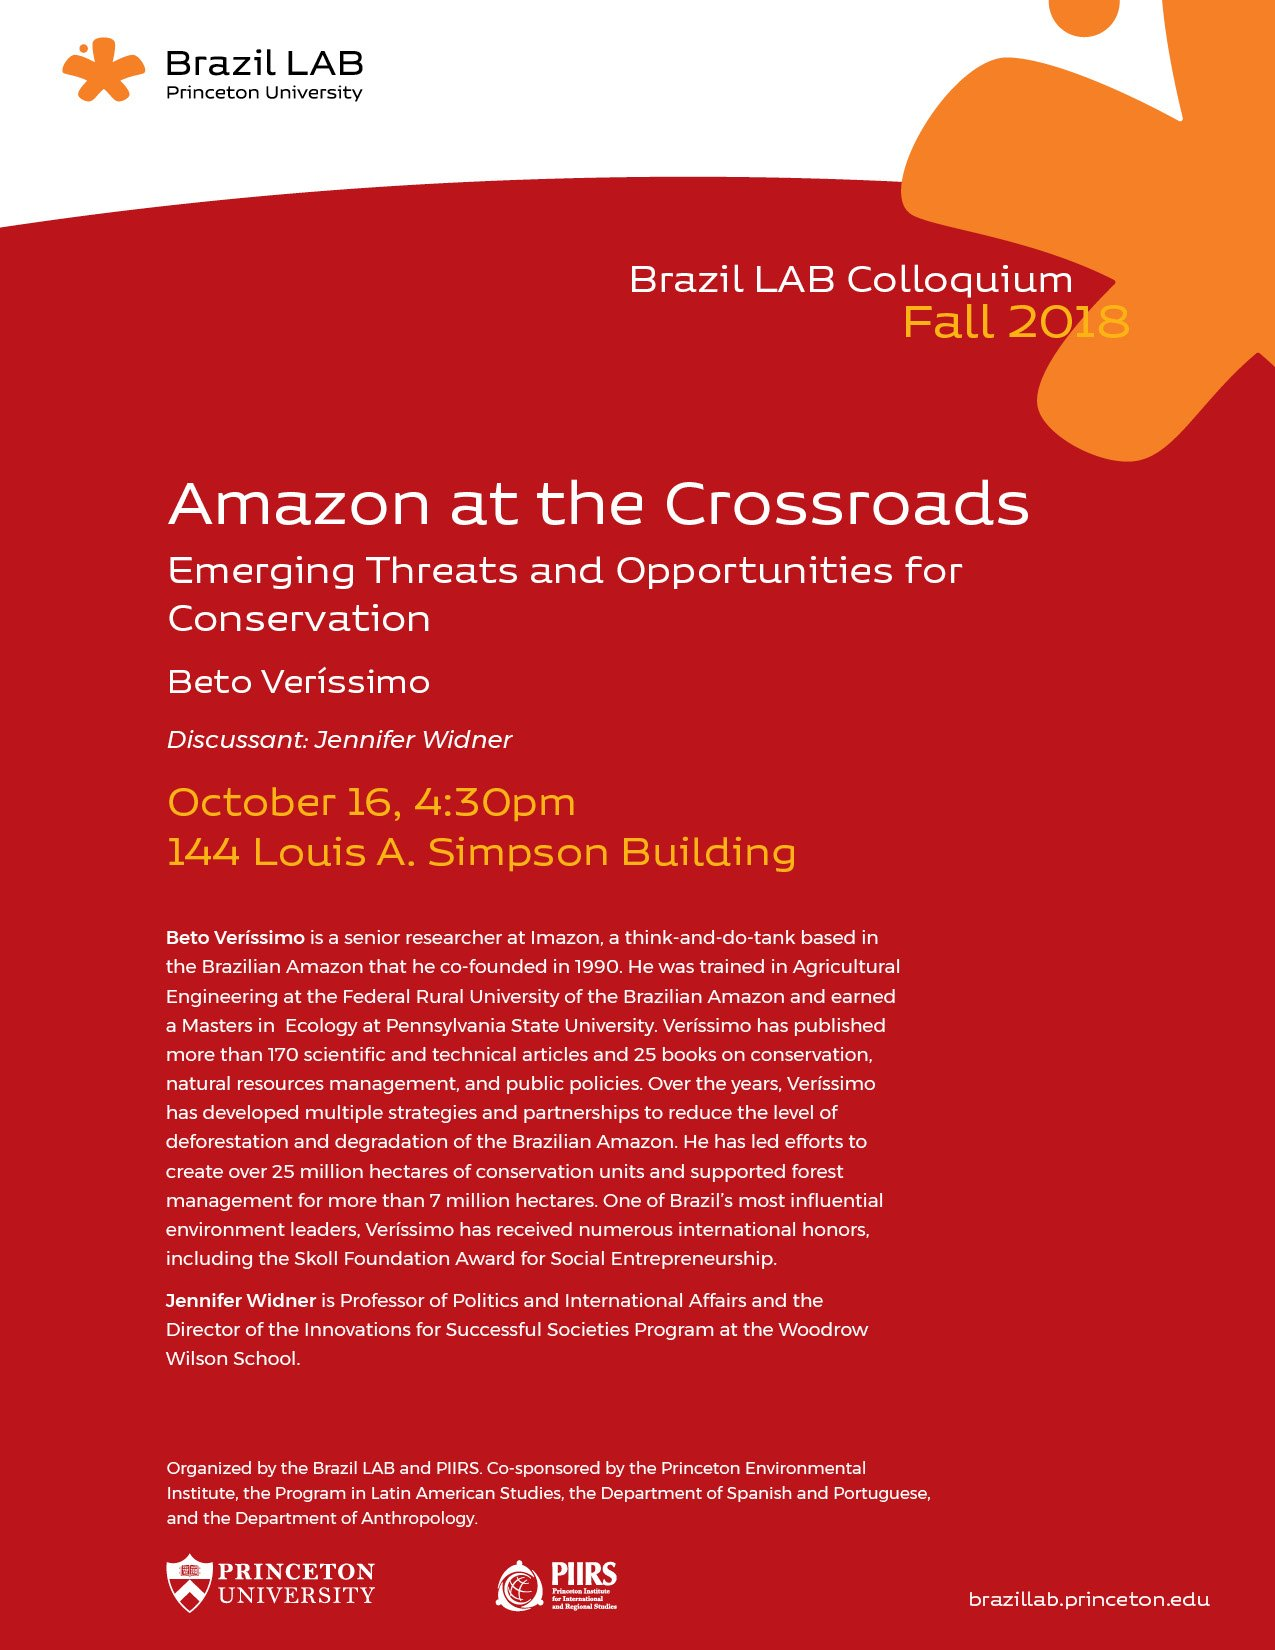 Amazon at the Crossroads flyer